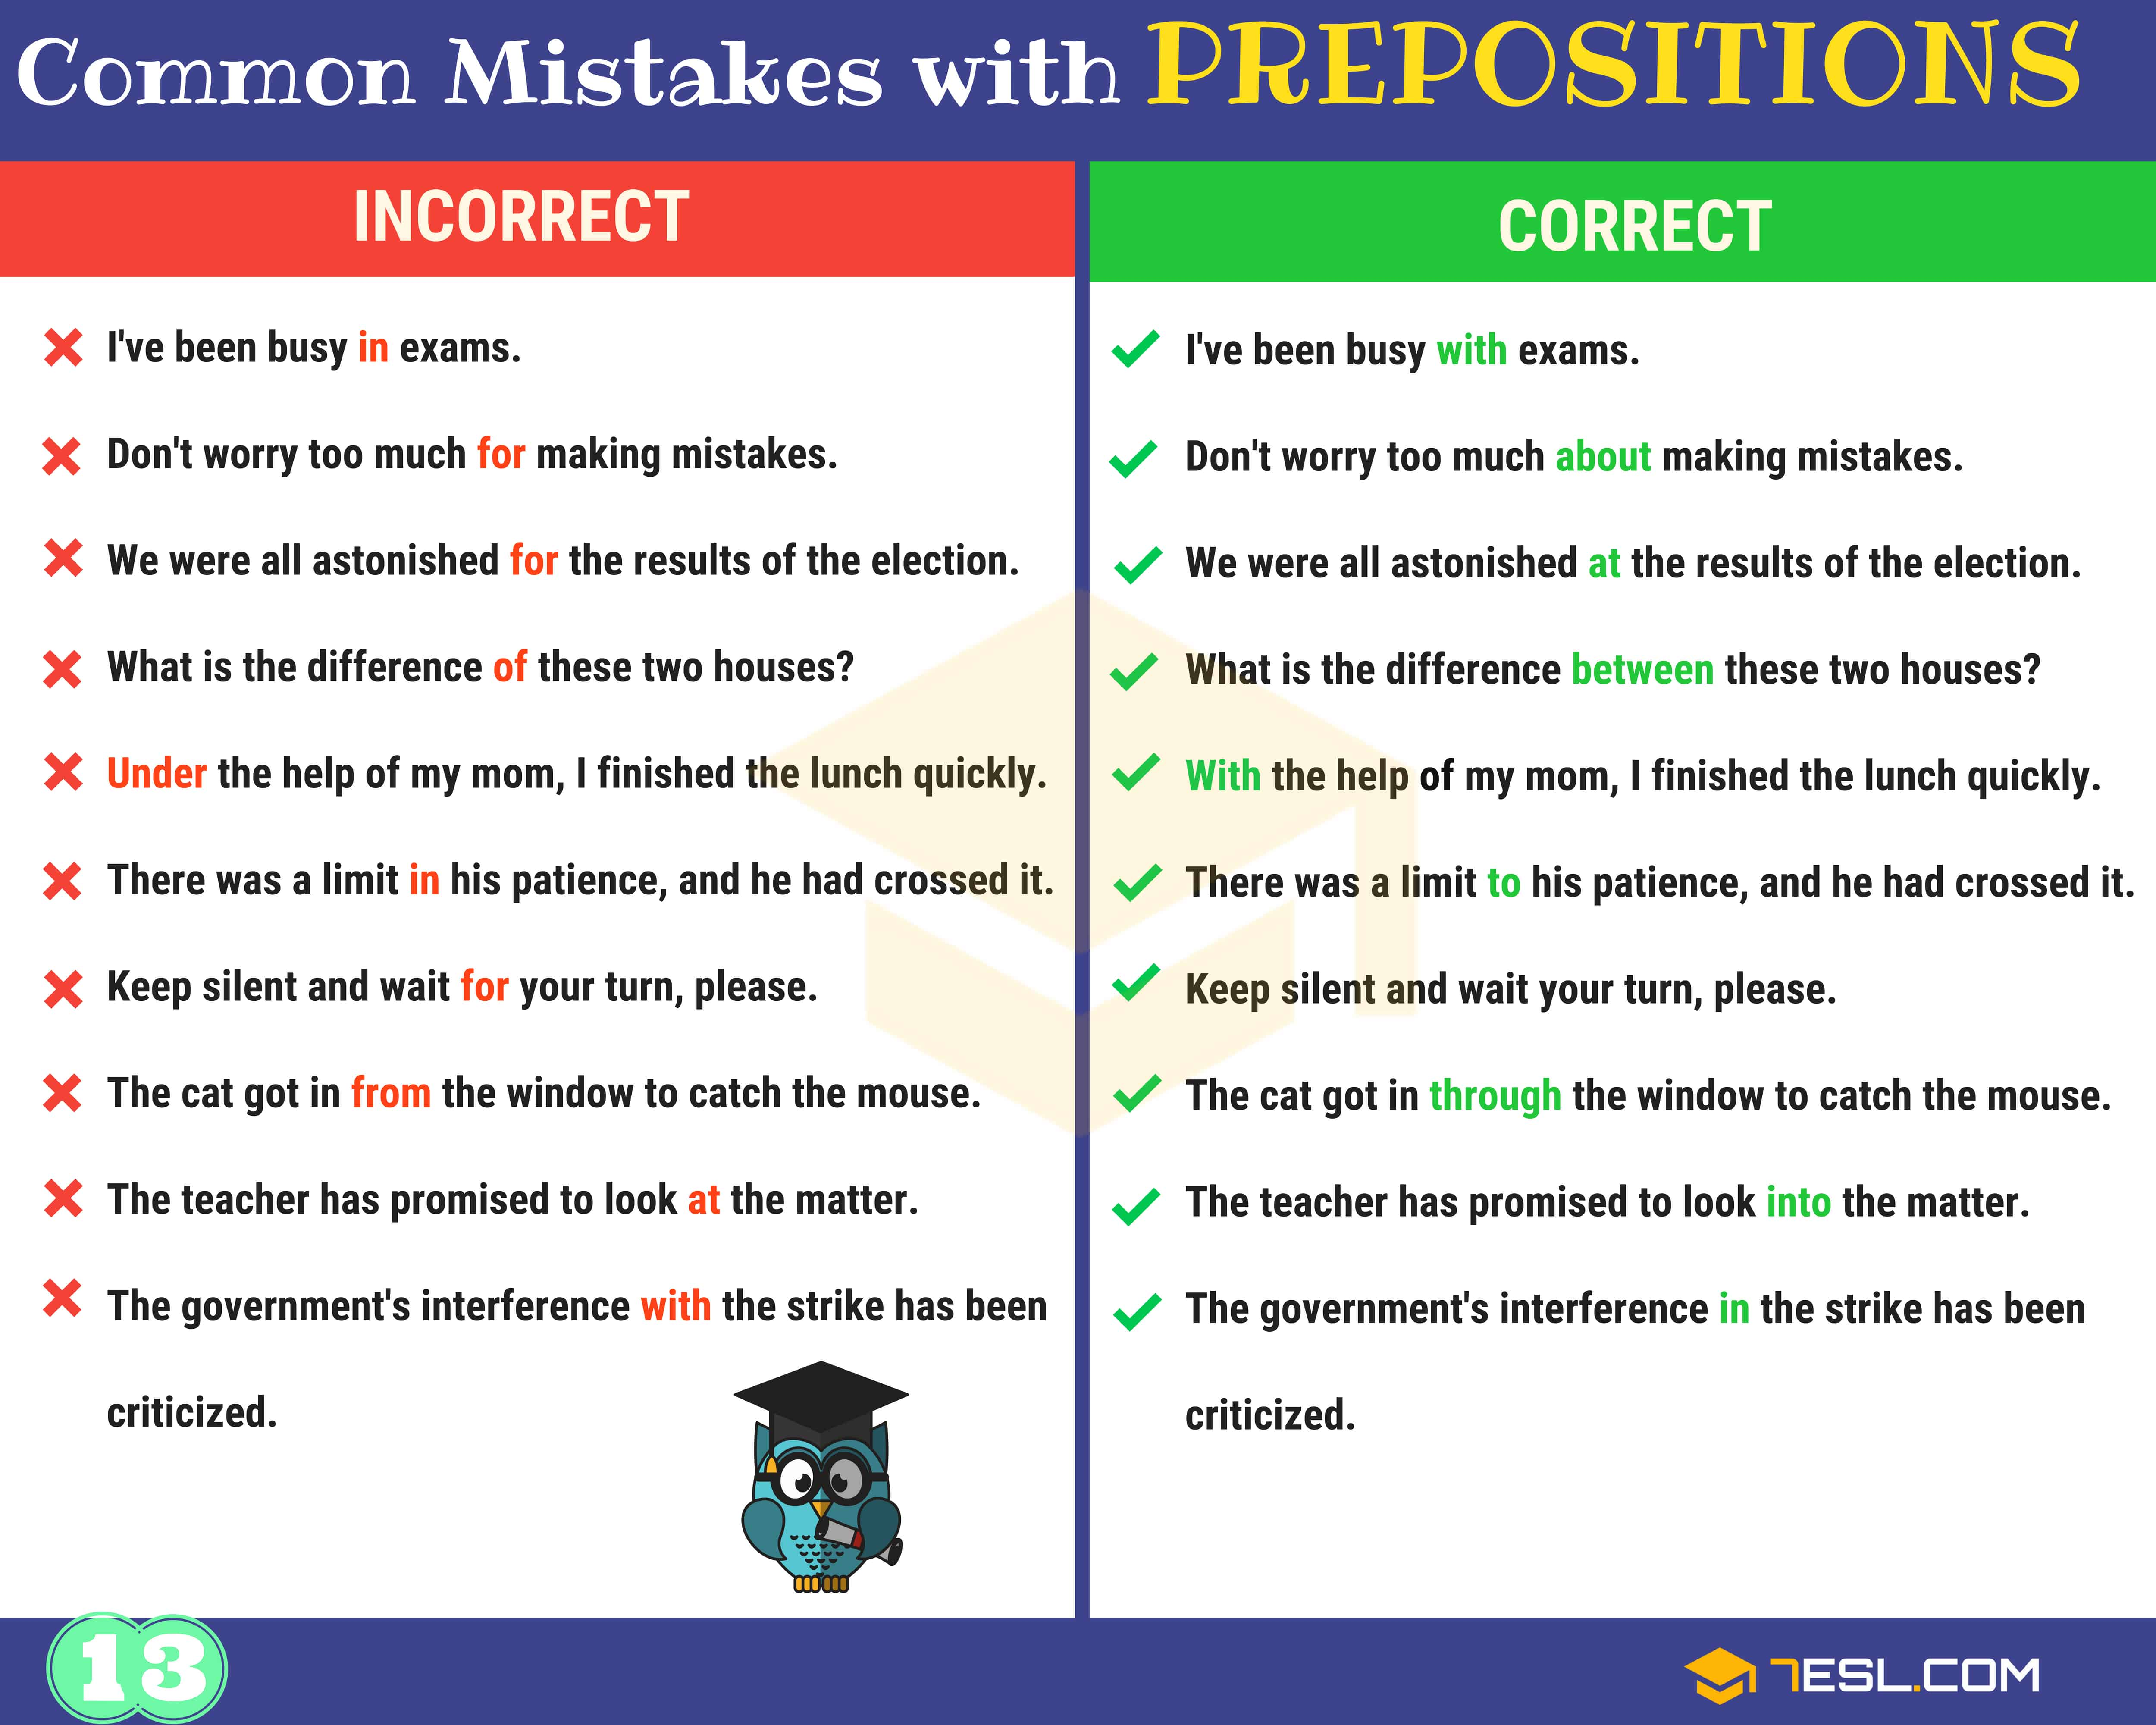 130+ Common MISTAKES With PREPOSITIONS And How To Avoid Them 14